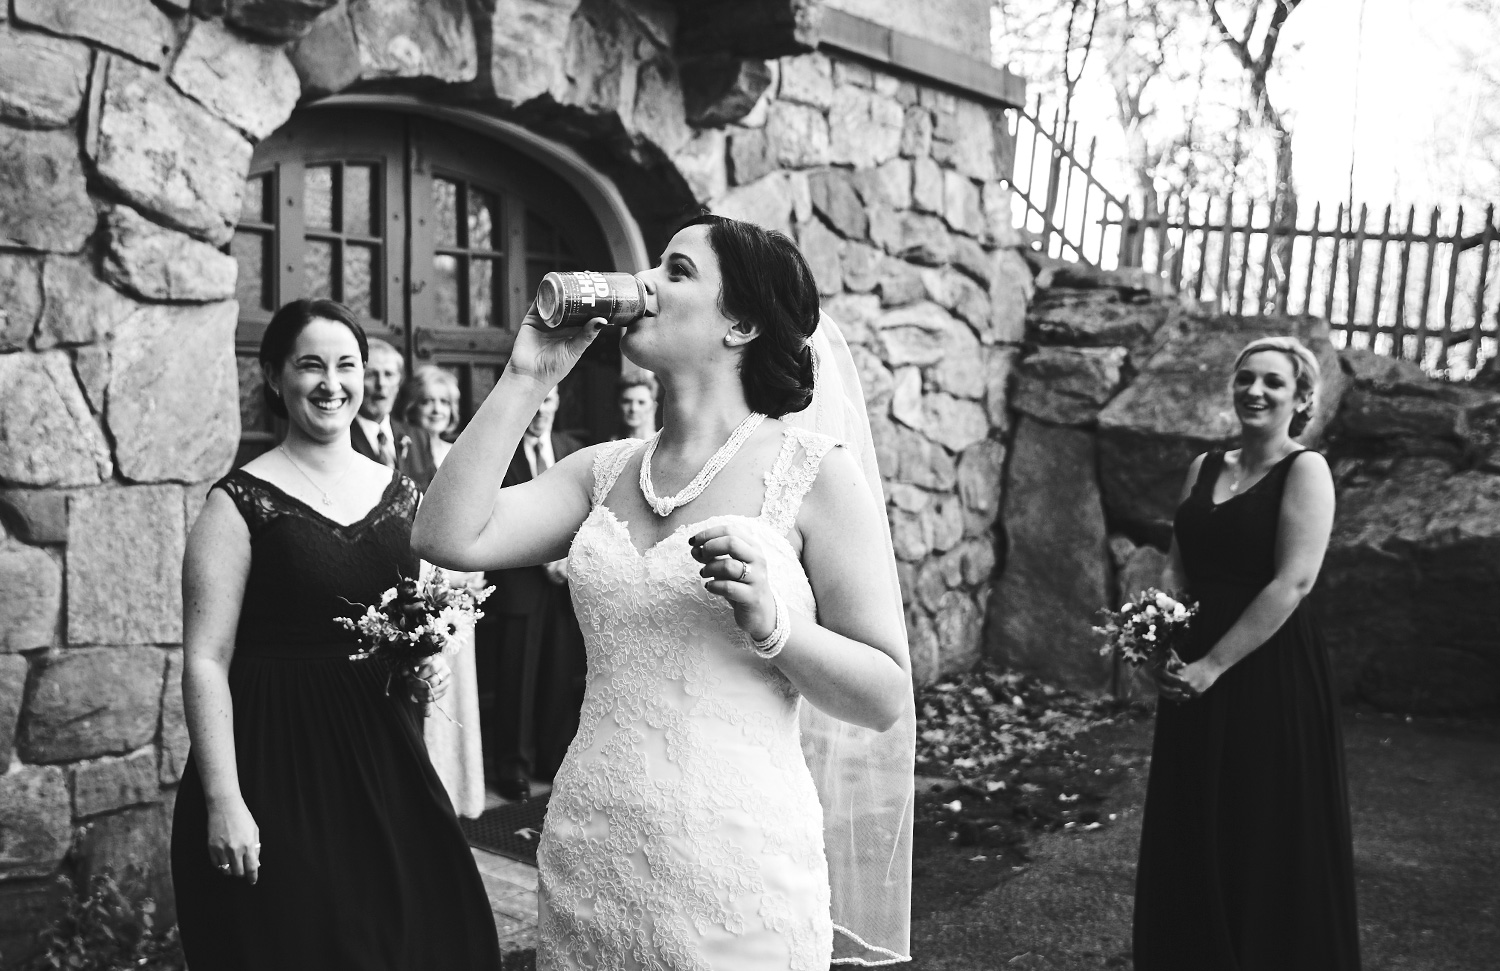 161119_ArrowParkLake&LodgeWedding_By_BriJohnsonWeddings_0083.jpg